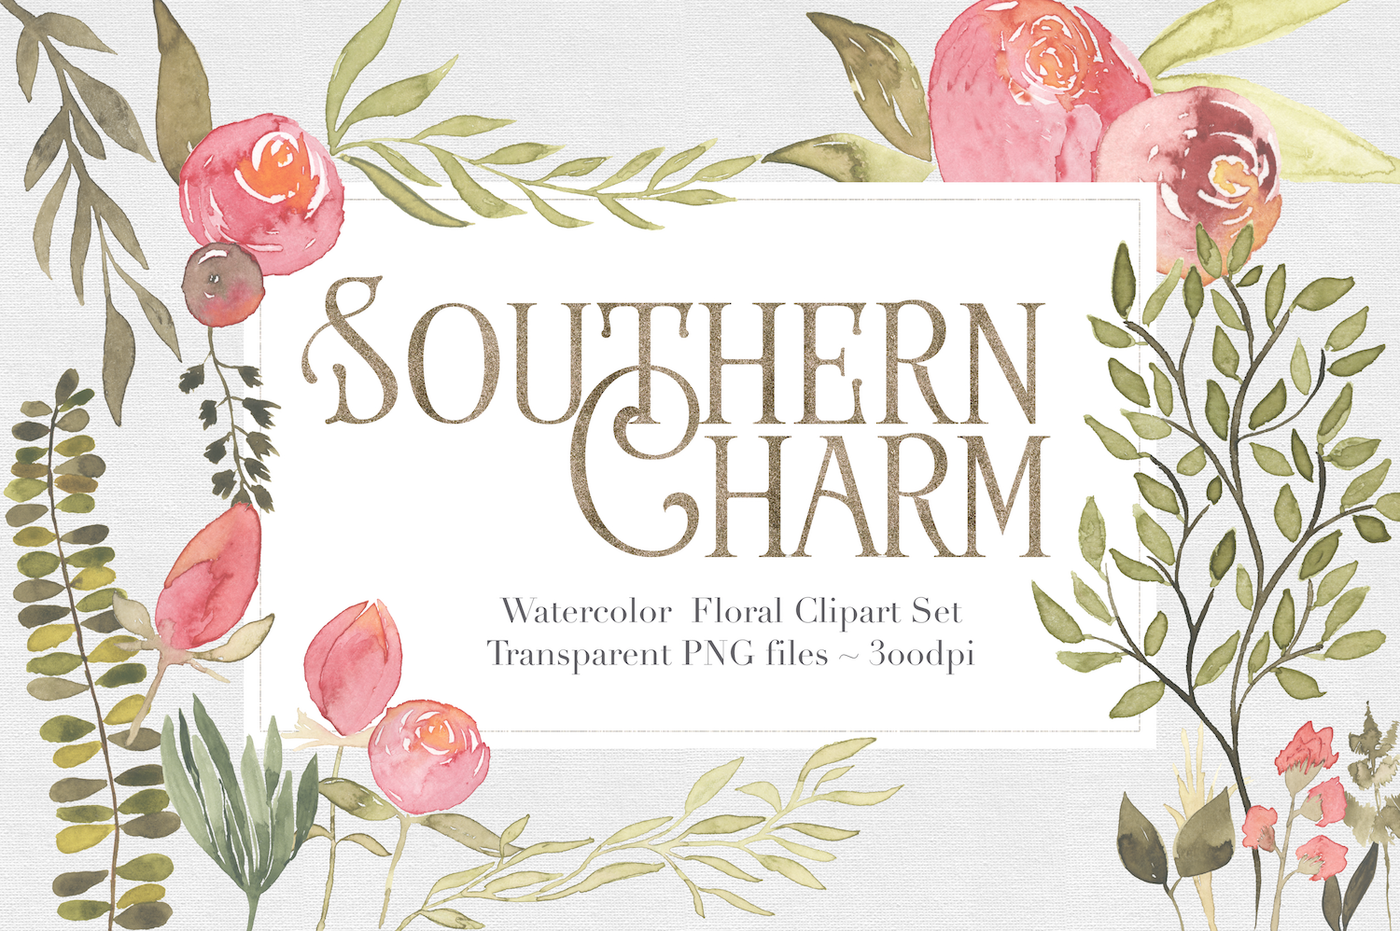 Southern Charm Floral Clipart Set by The Autumn Rabbit.